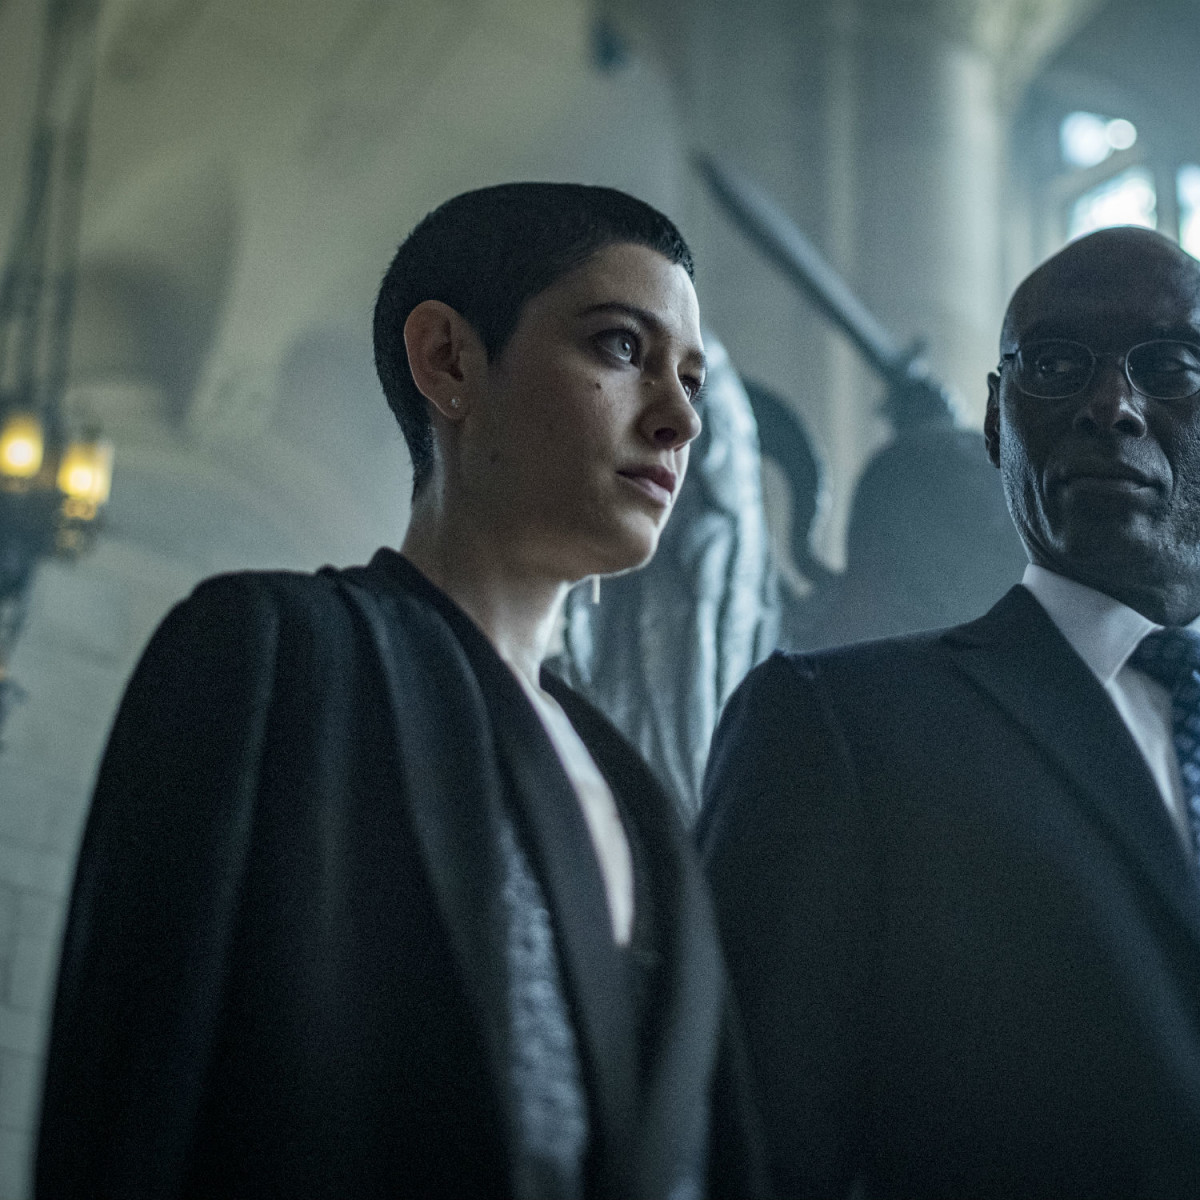 Asia Kate Dillon and Lance Reddick in John Wick: Chapter 3 - Parabellum